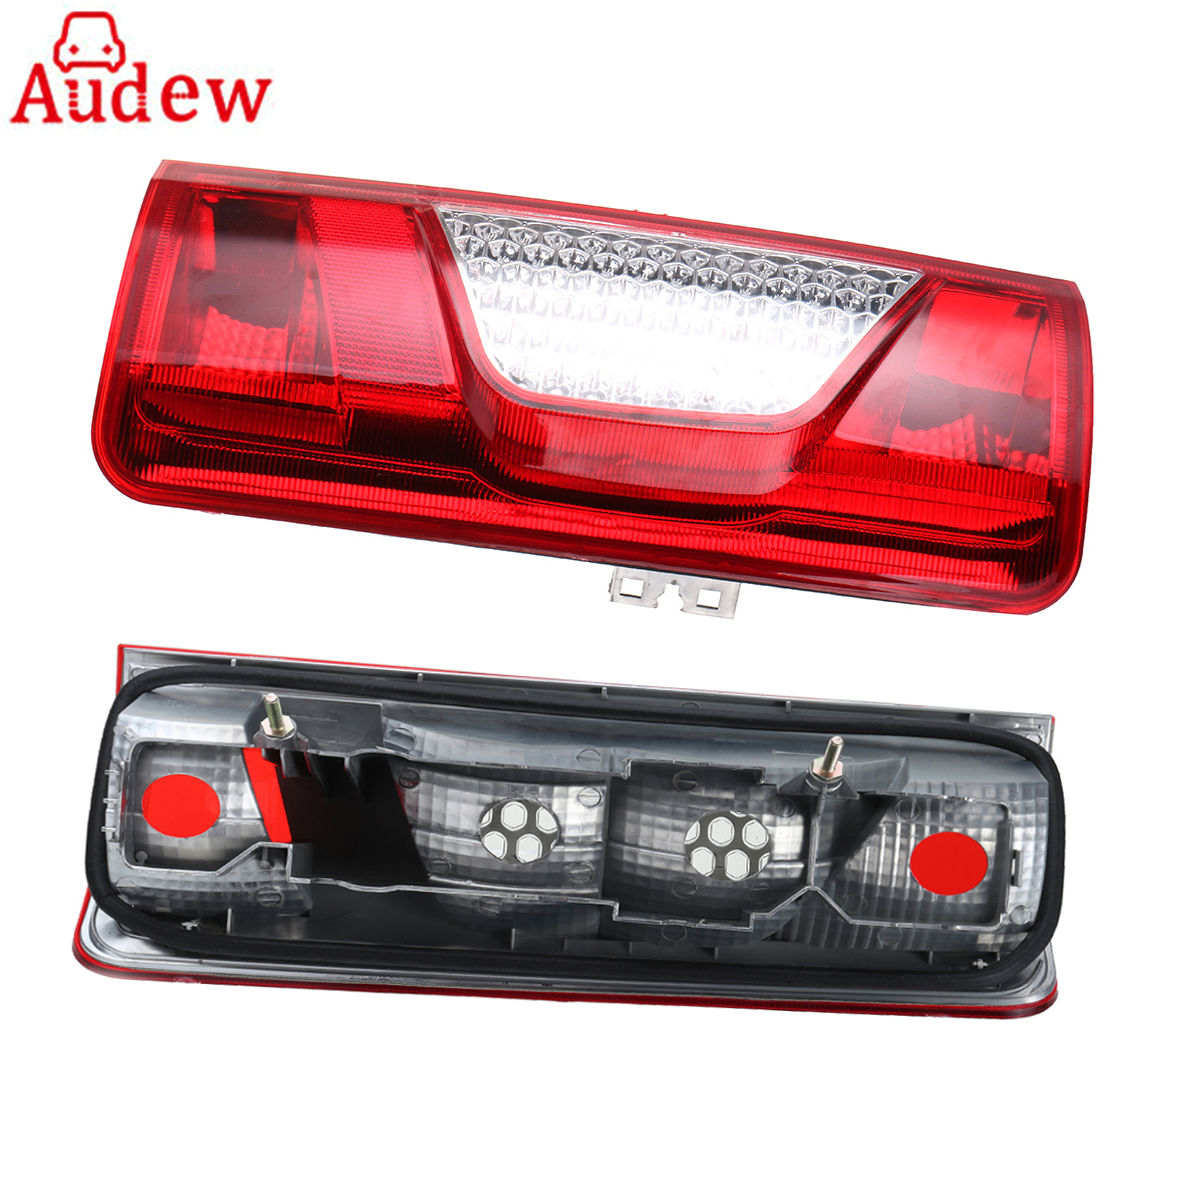 1Pcs Right/Left Car Tail Lamp Light Lens Replacement For Ford Transit/Connect 2009-2014